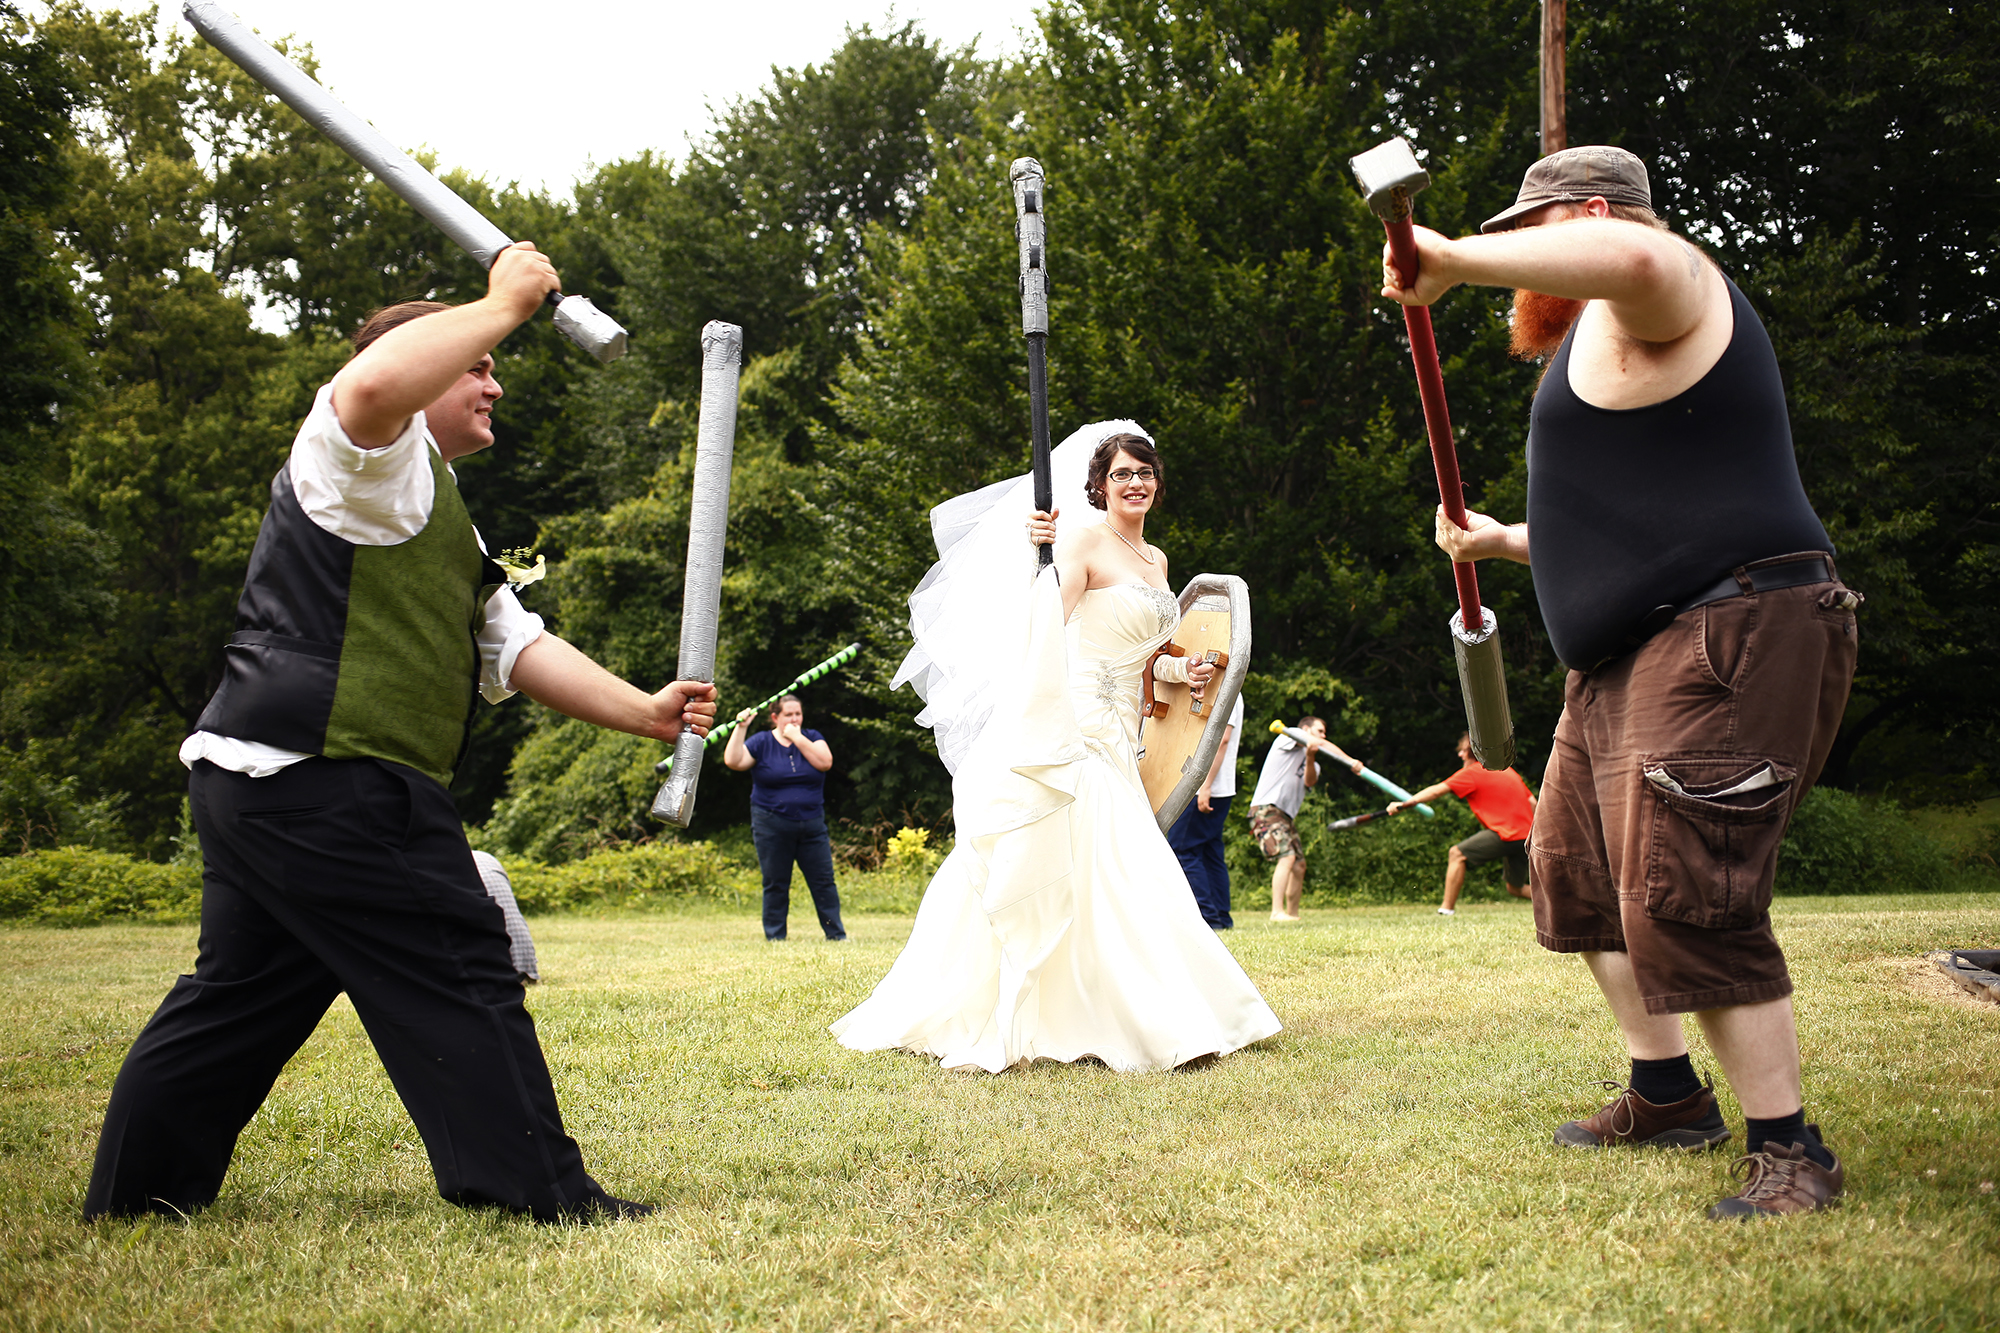 Aaron Mackison and Bekah Calabro stopped by a LARPing Meet and Beat after their nuptials. Live Action Role Playing is a fantasy game played in many different ways across the world. A Meet and Beat was held in Cherokee Park to get new players familiar with the game and weapons, or boffers, used to play.